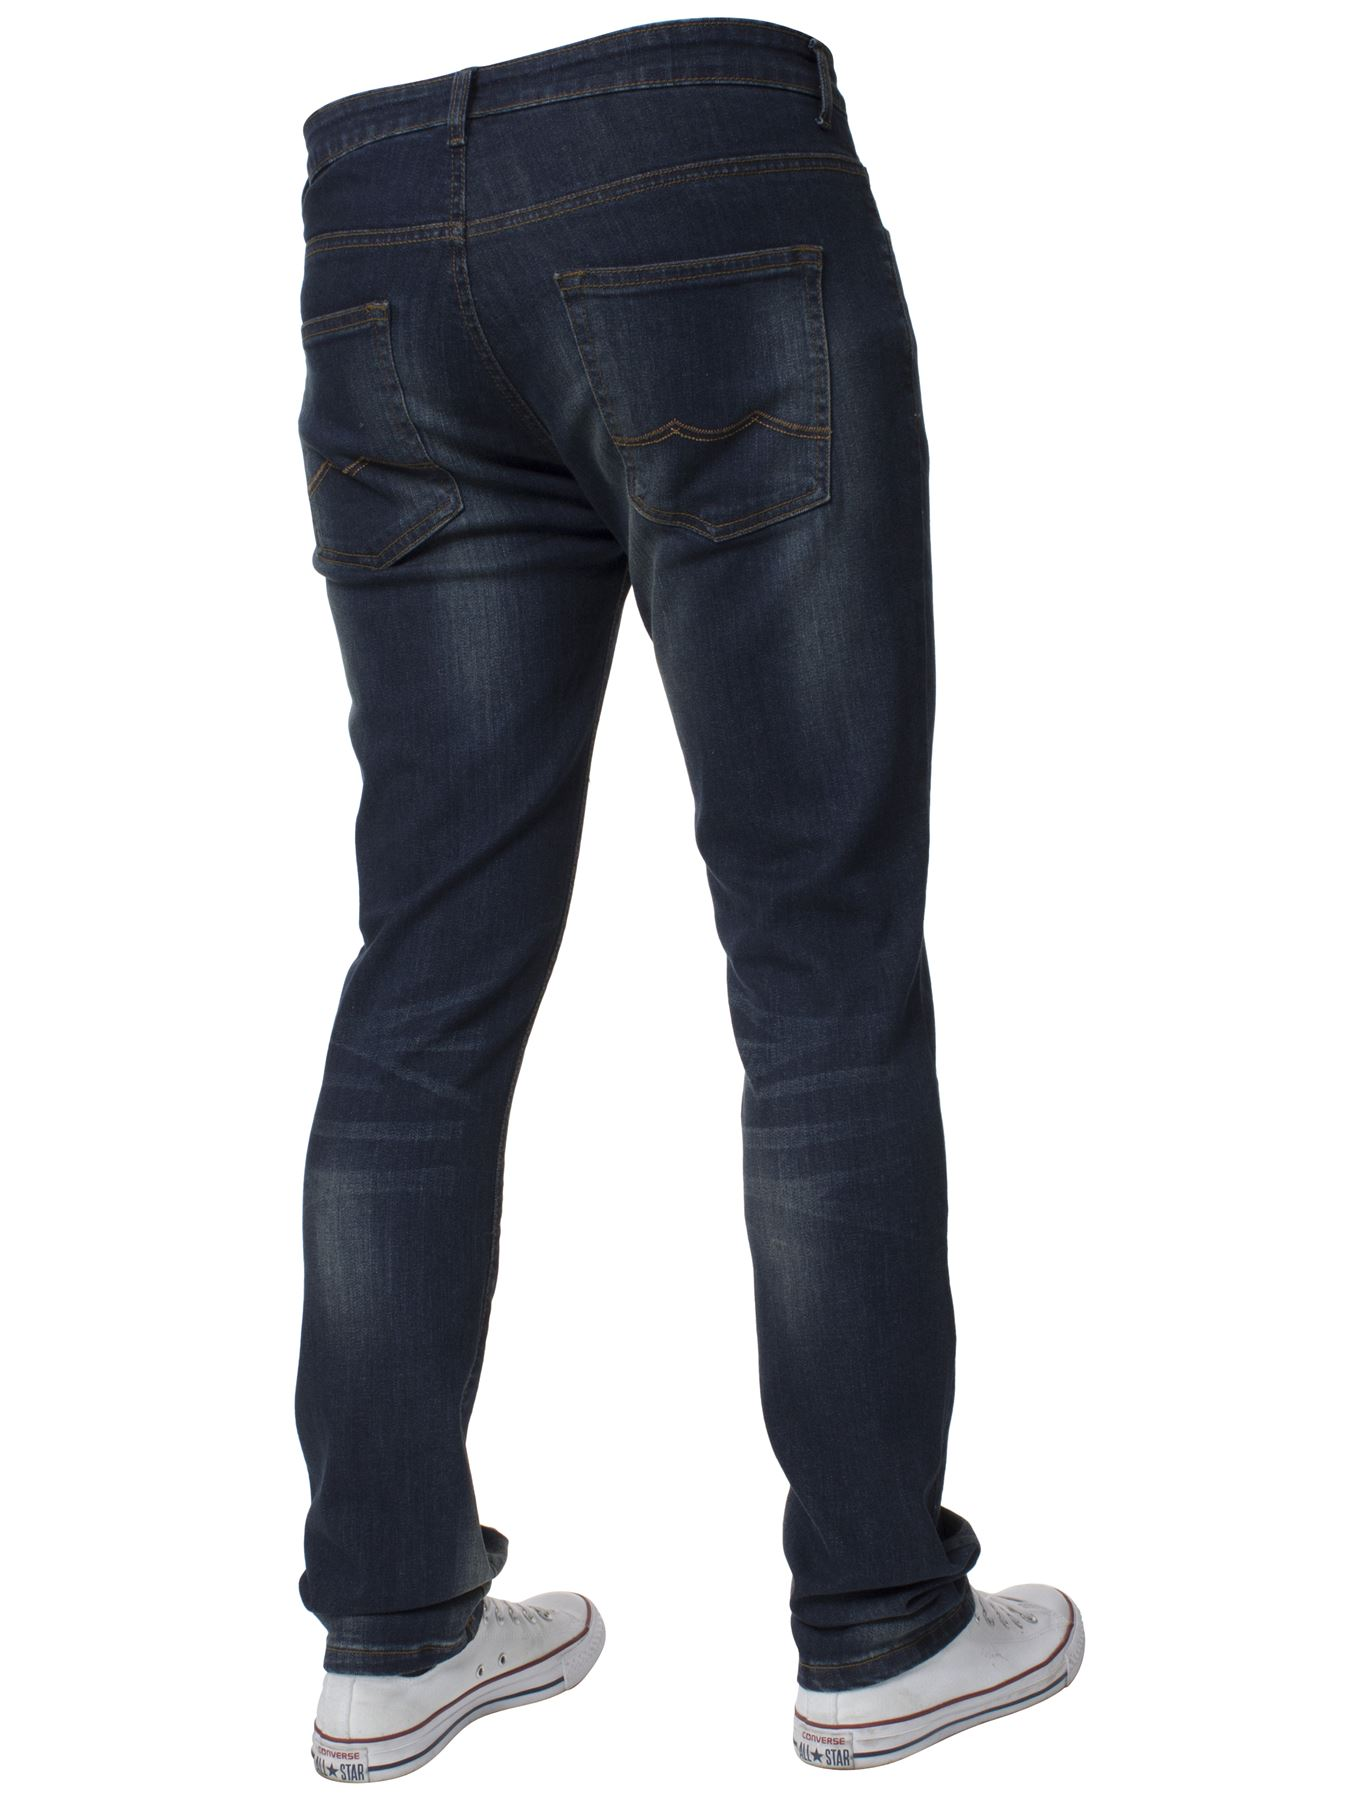 Mens-Skinny-Stretch-Jeans-Slim-Fit-Flex-Denim-Trousers-Pants-King-Sizes-by-Kruze thumbnail 17